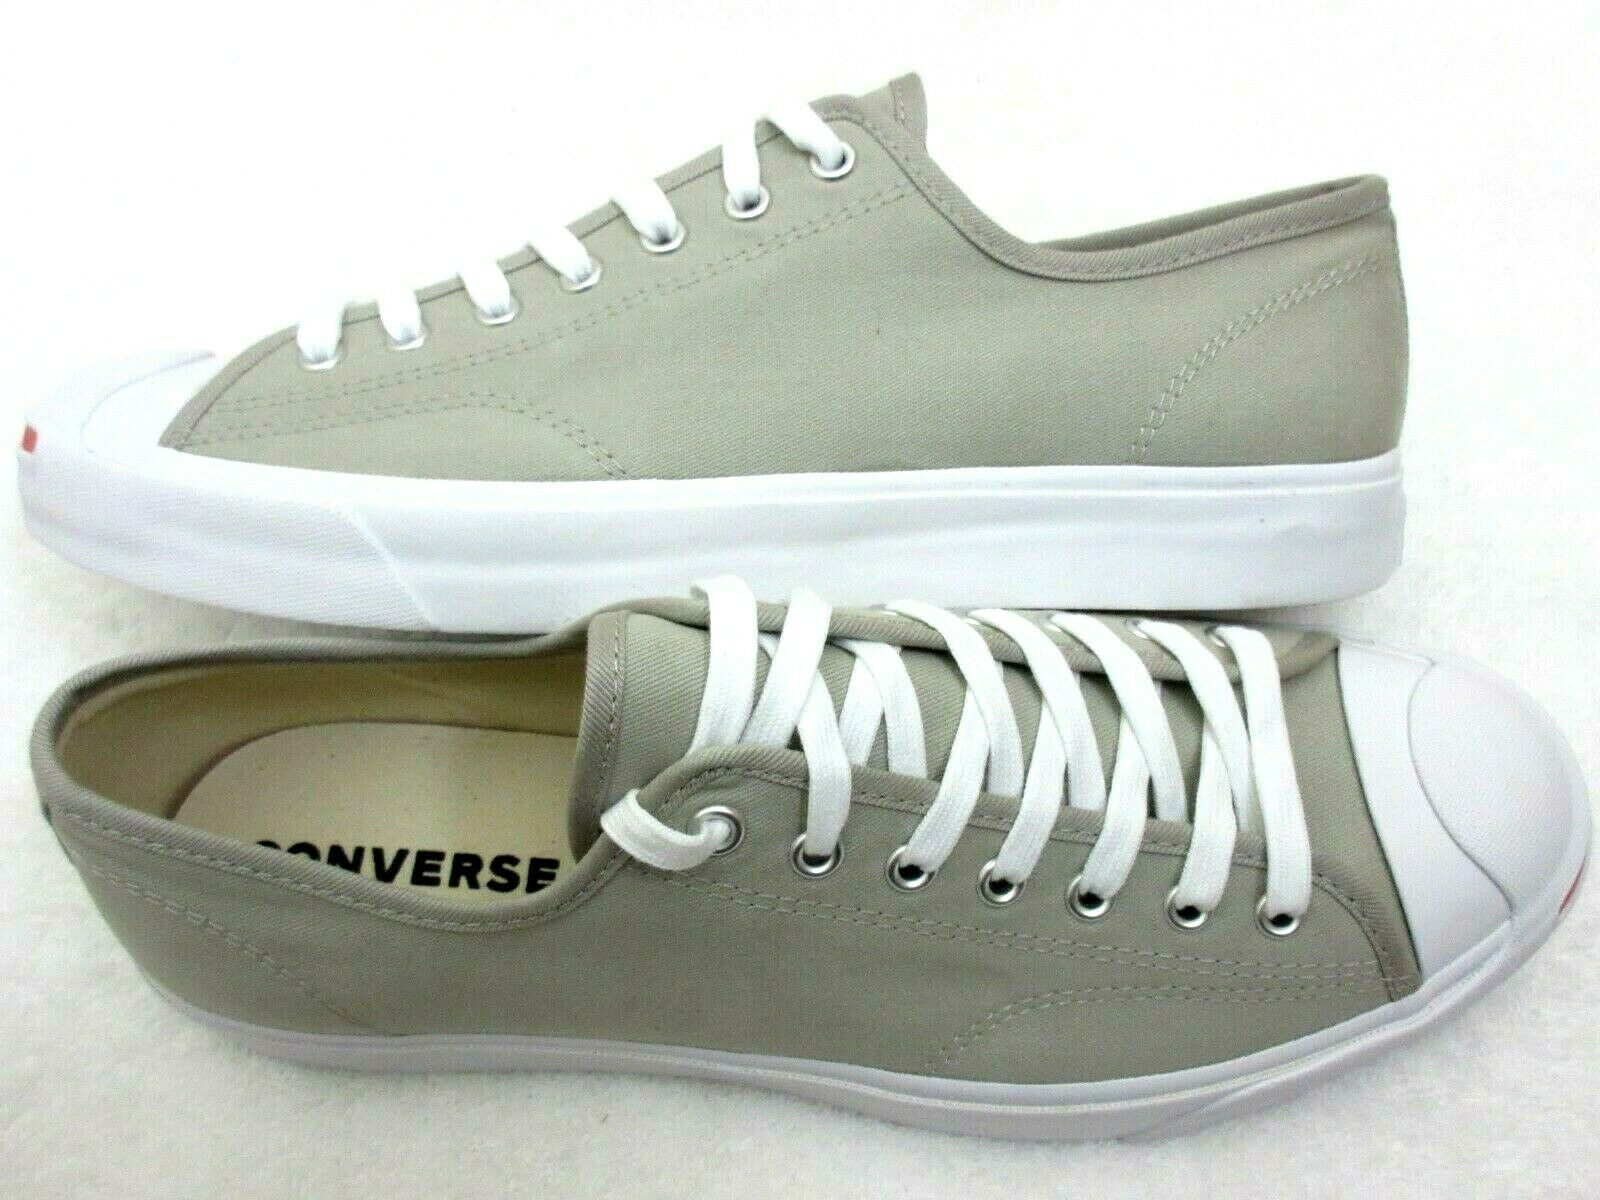 Converse Mens Jack Purcell OX Canvas Birch Bark White Habanero Red Shoes 10.5